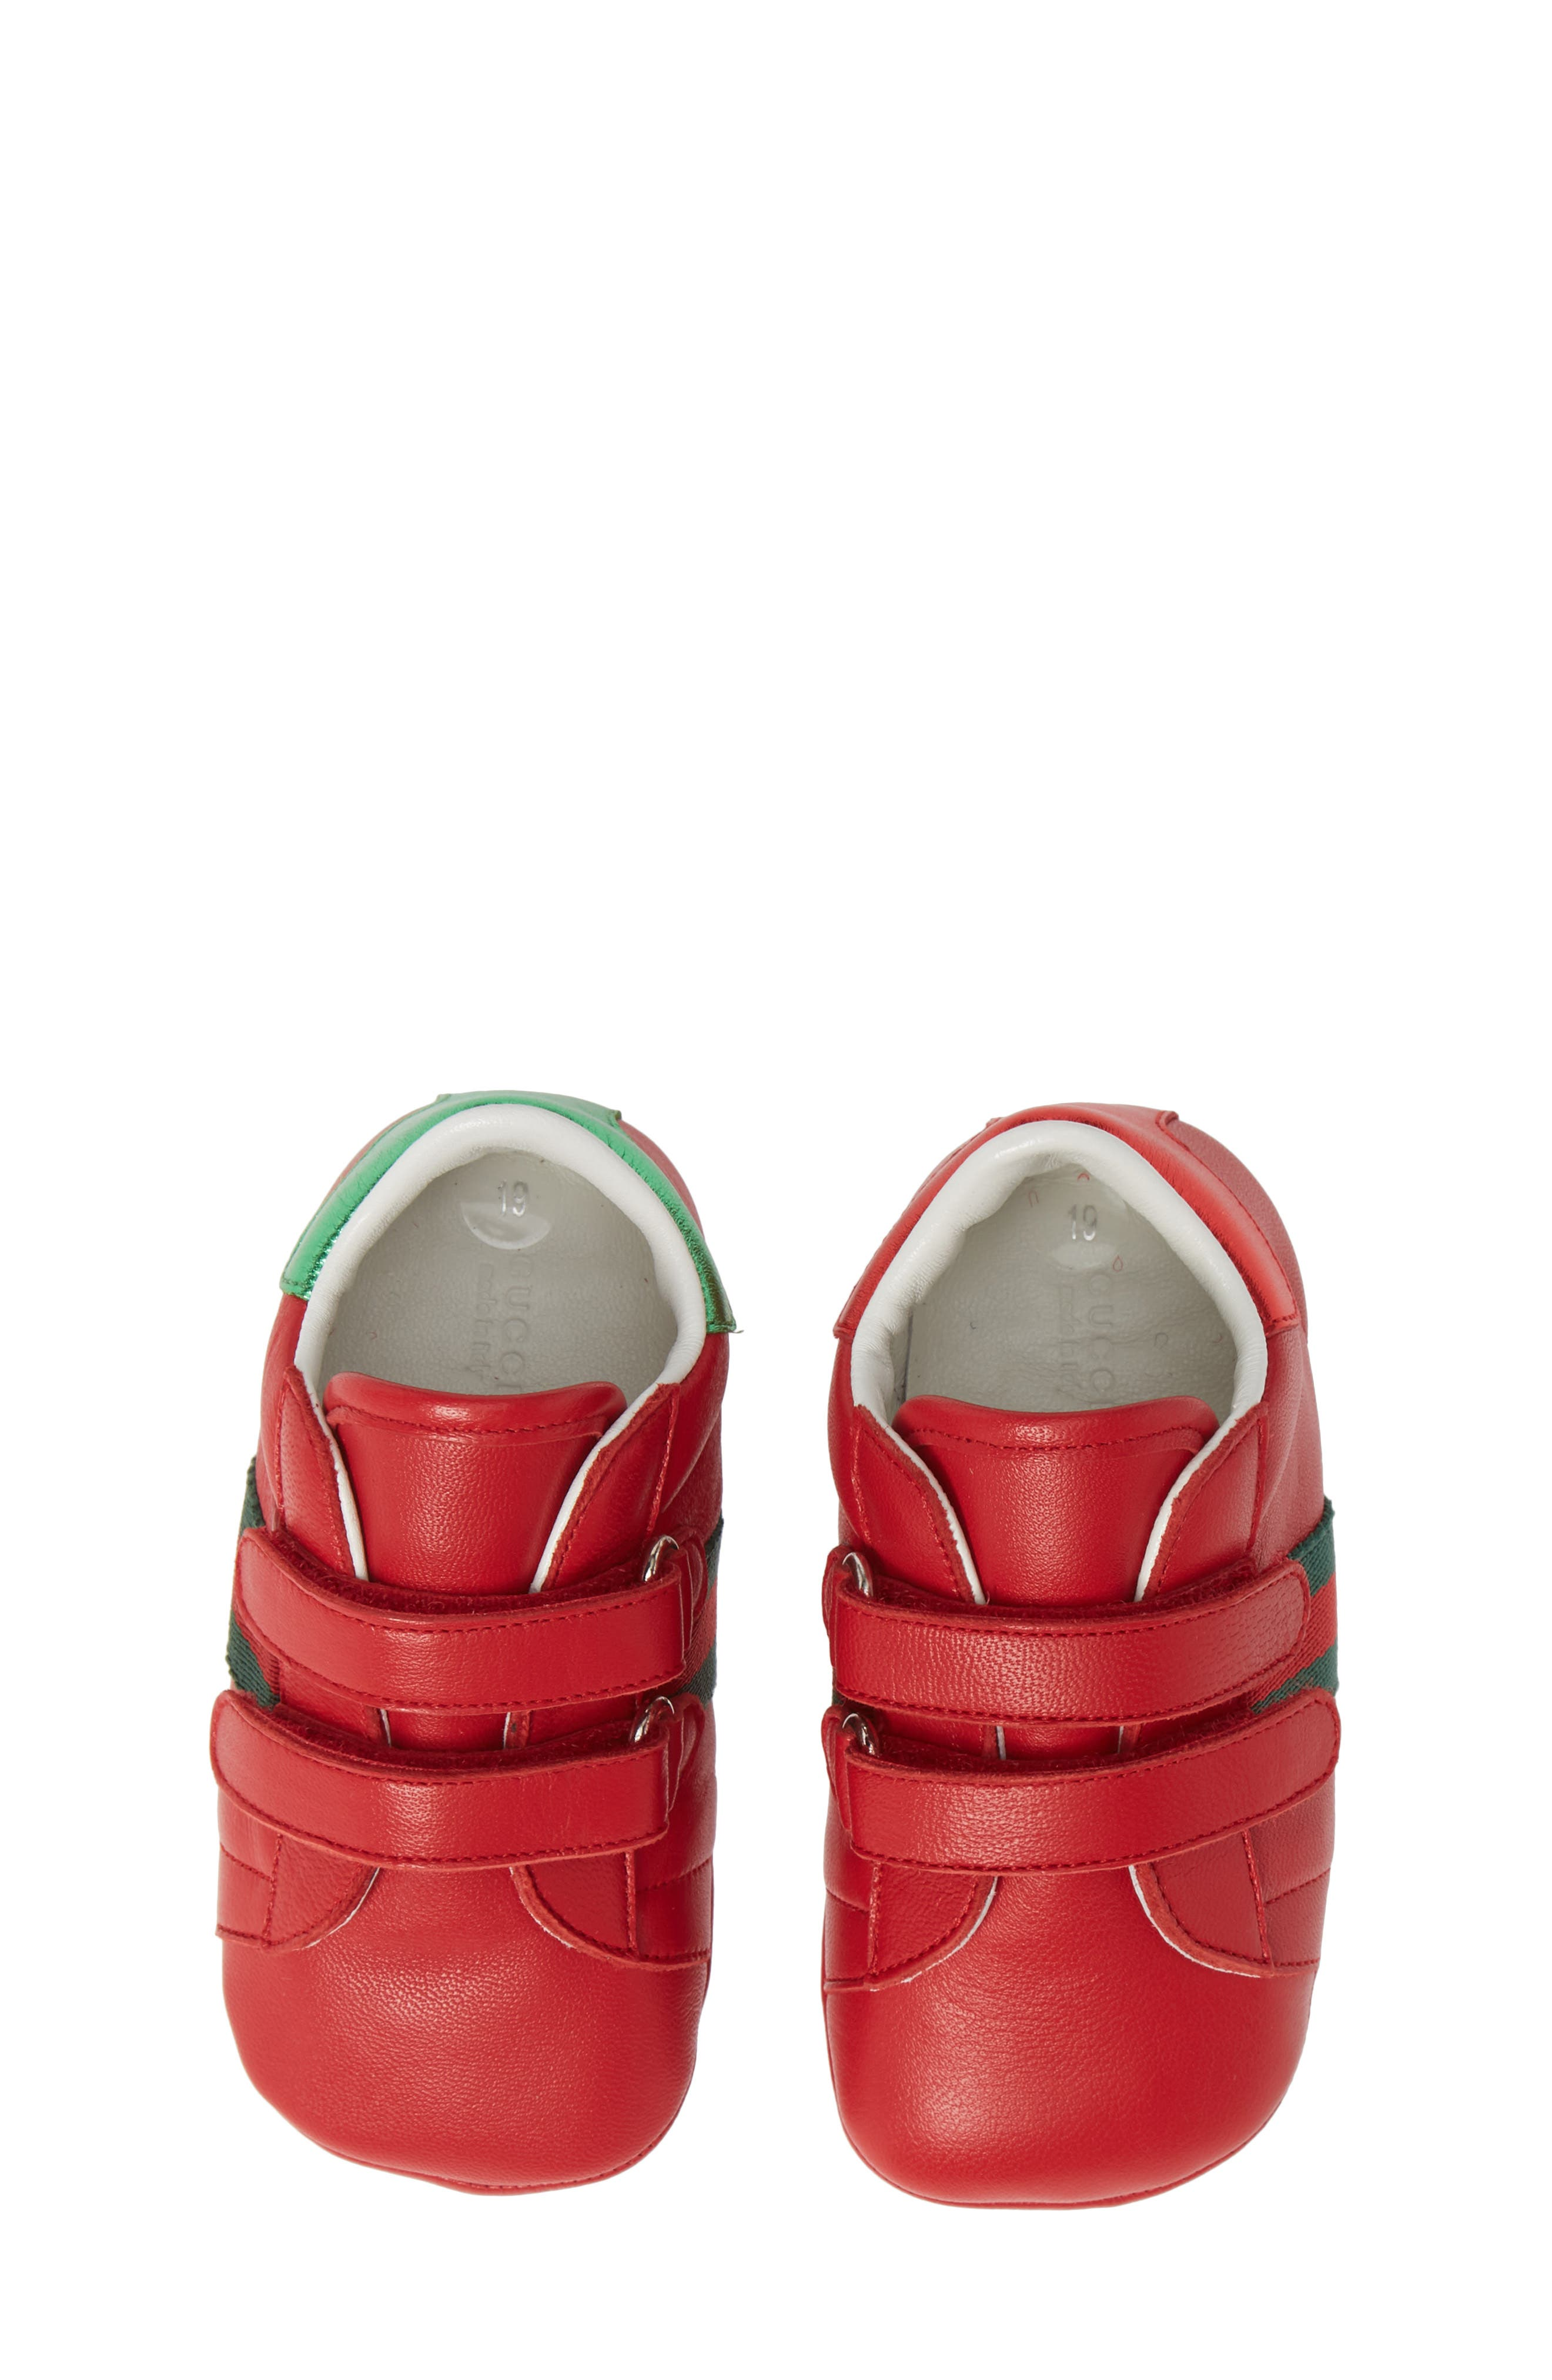 Ace Crib Shoe,                         Main,                         color, RED